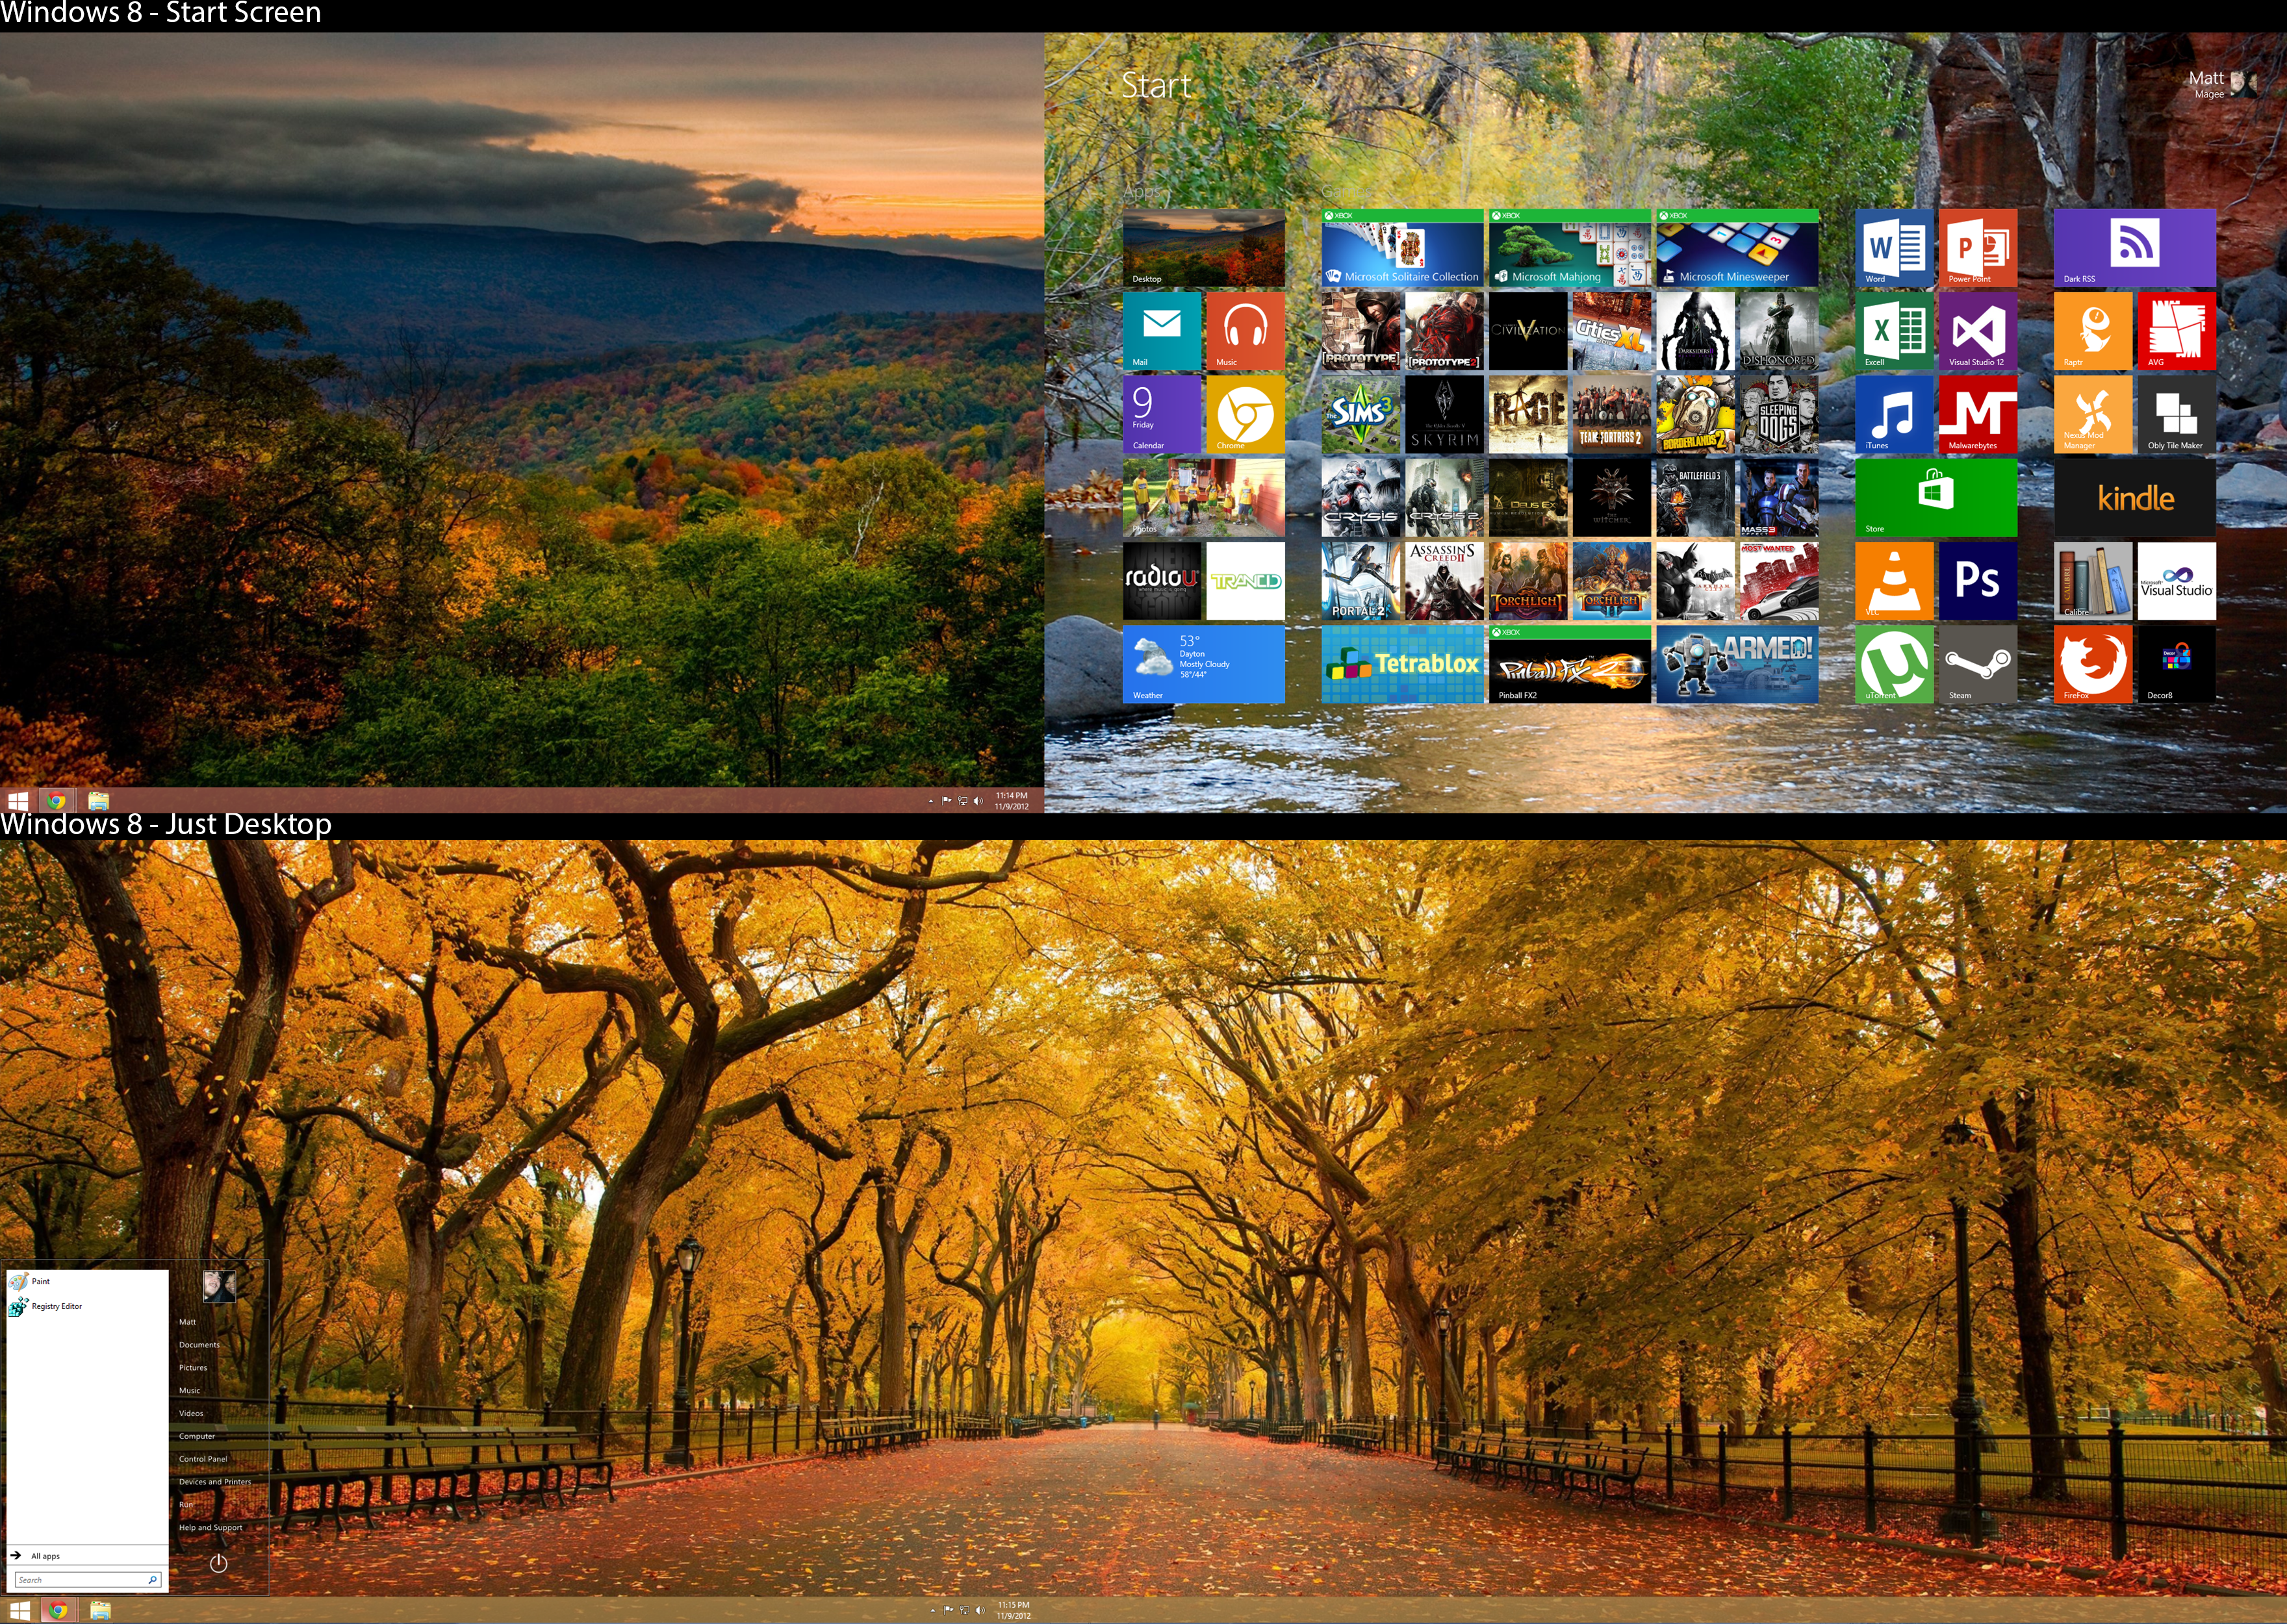 November Desktop Screen 2012 (Windows 8)